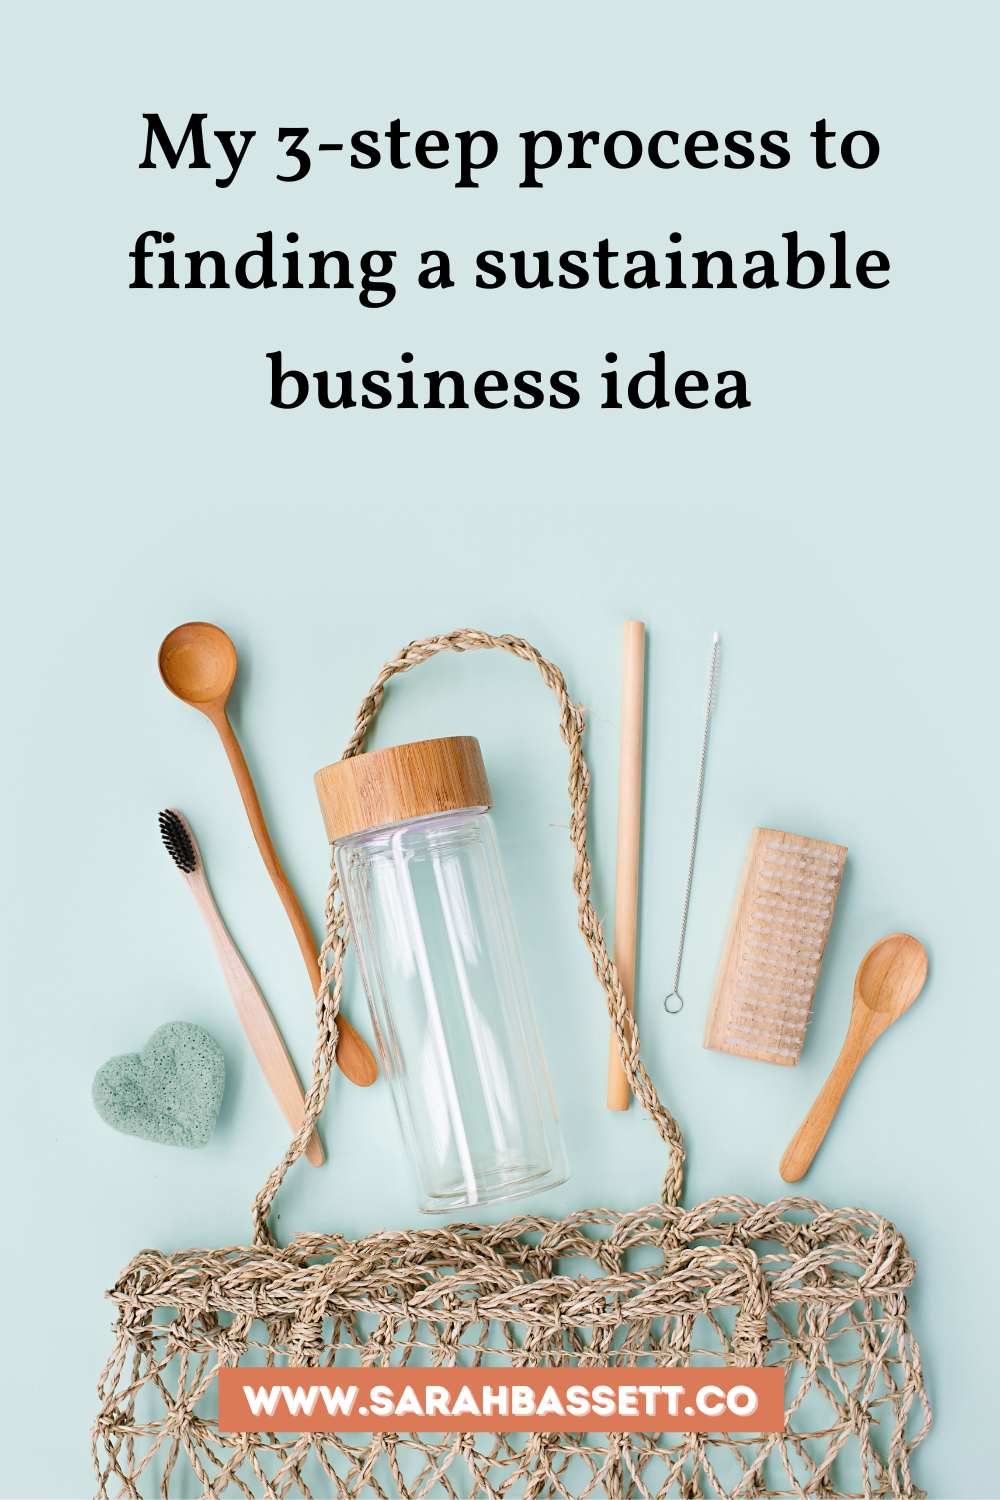 How to find a sustainable business idea that's eco-friendly, zero waste, ethical and plastic-free